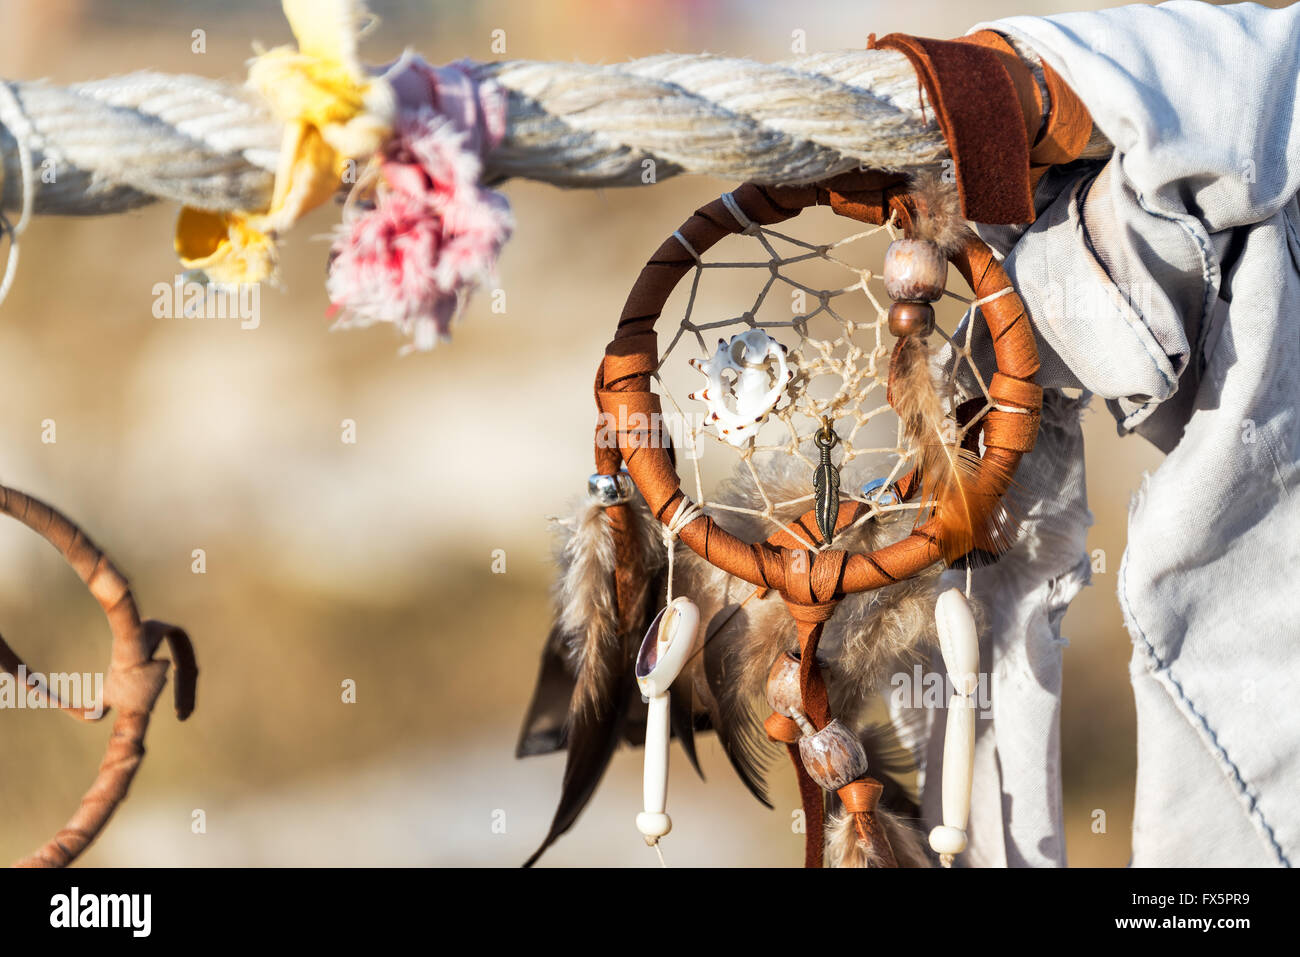 Dreamcatcher at Medicine Wheel National Historic Landmark in Wyoming - Stock Image